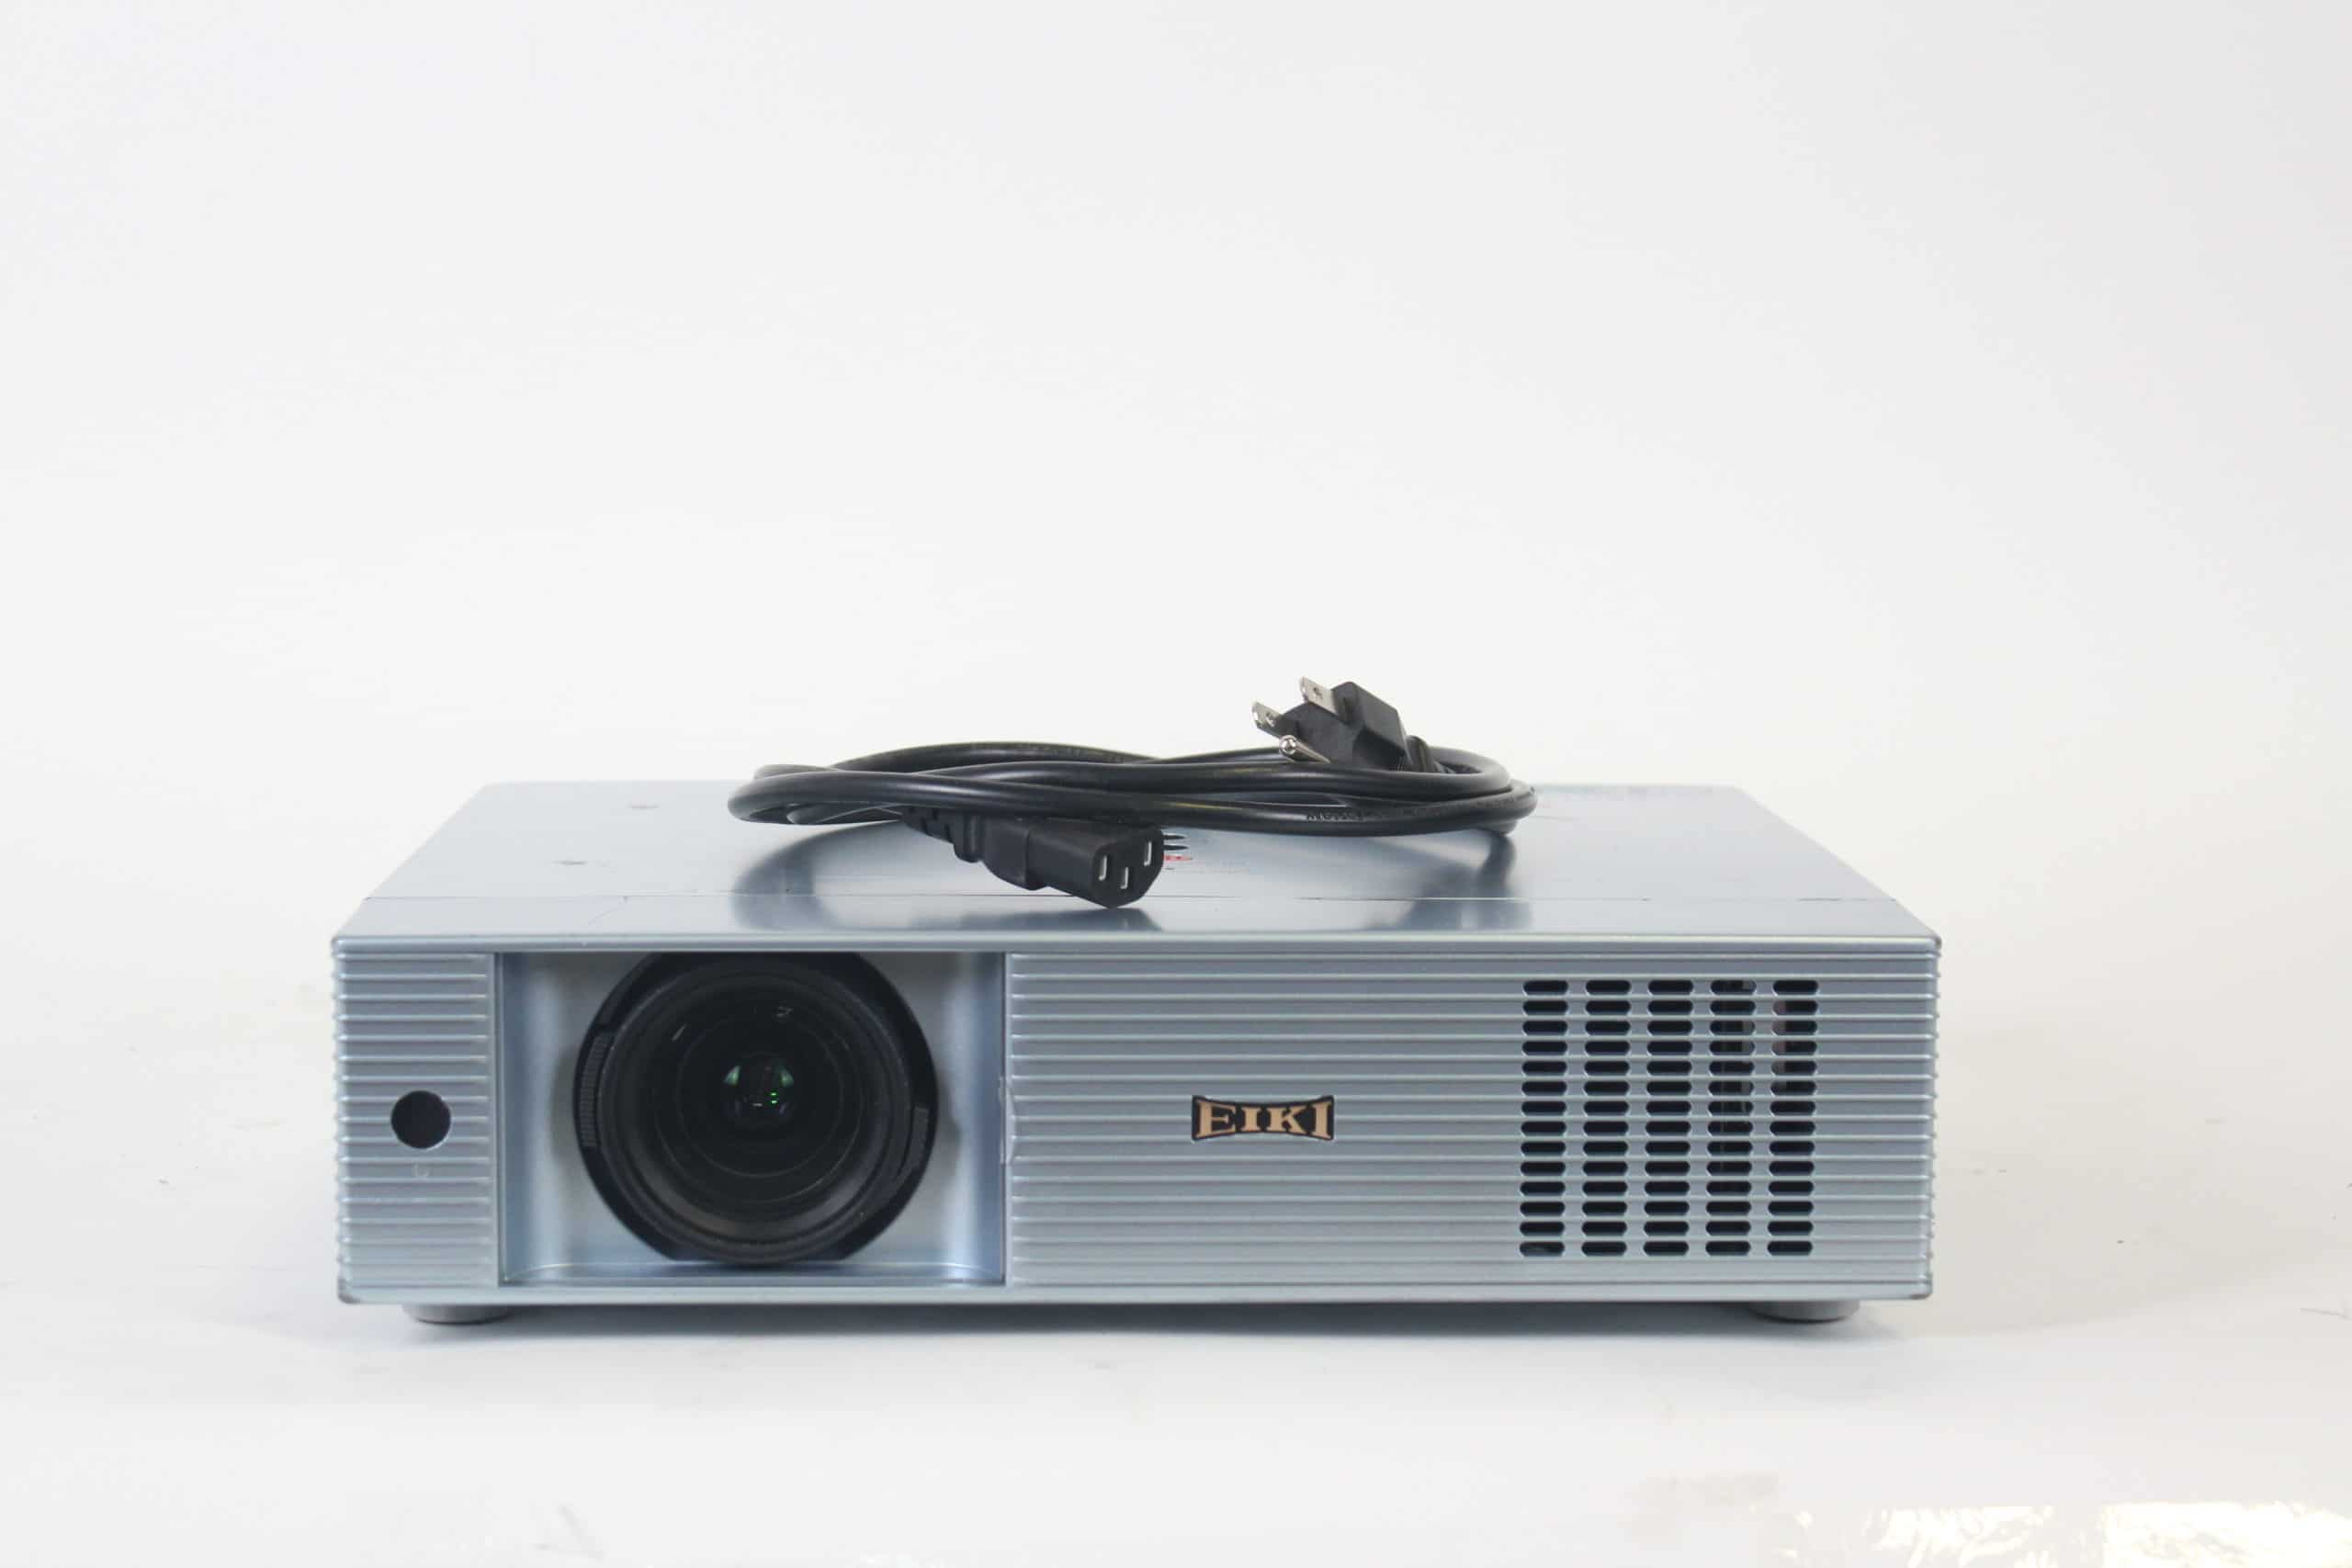 eiki-lc-xb43-xga-4500-lumen-3lcd-conference-room-projector-w-soft-case-1739-op-hours MAIN